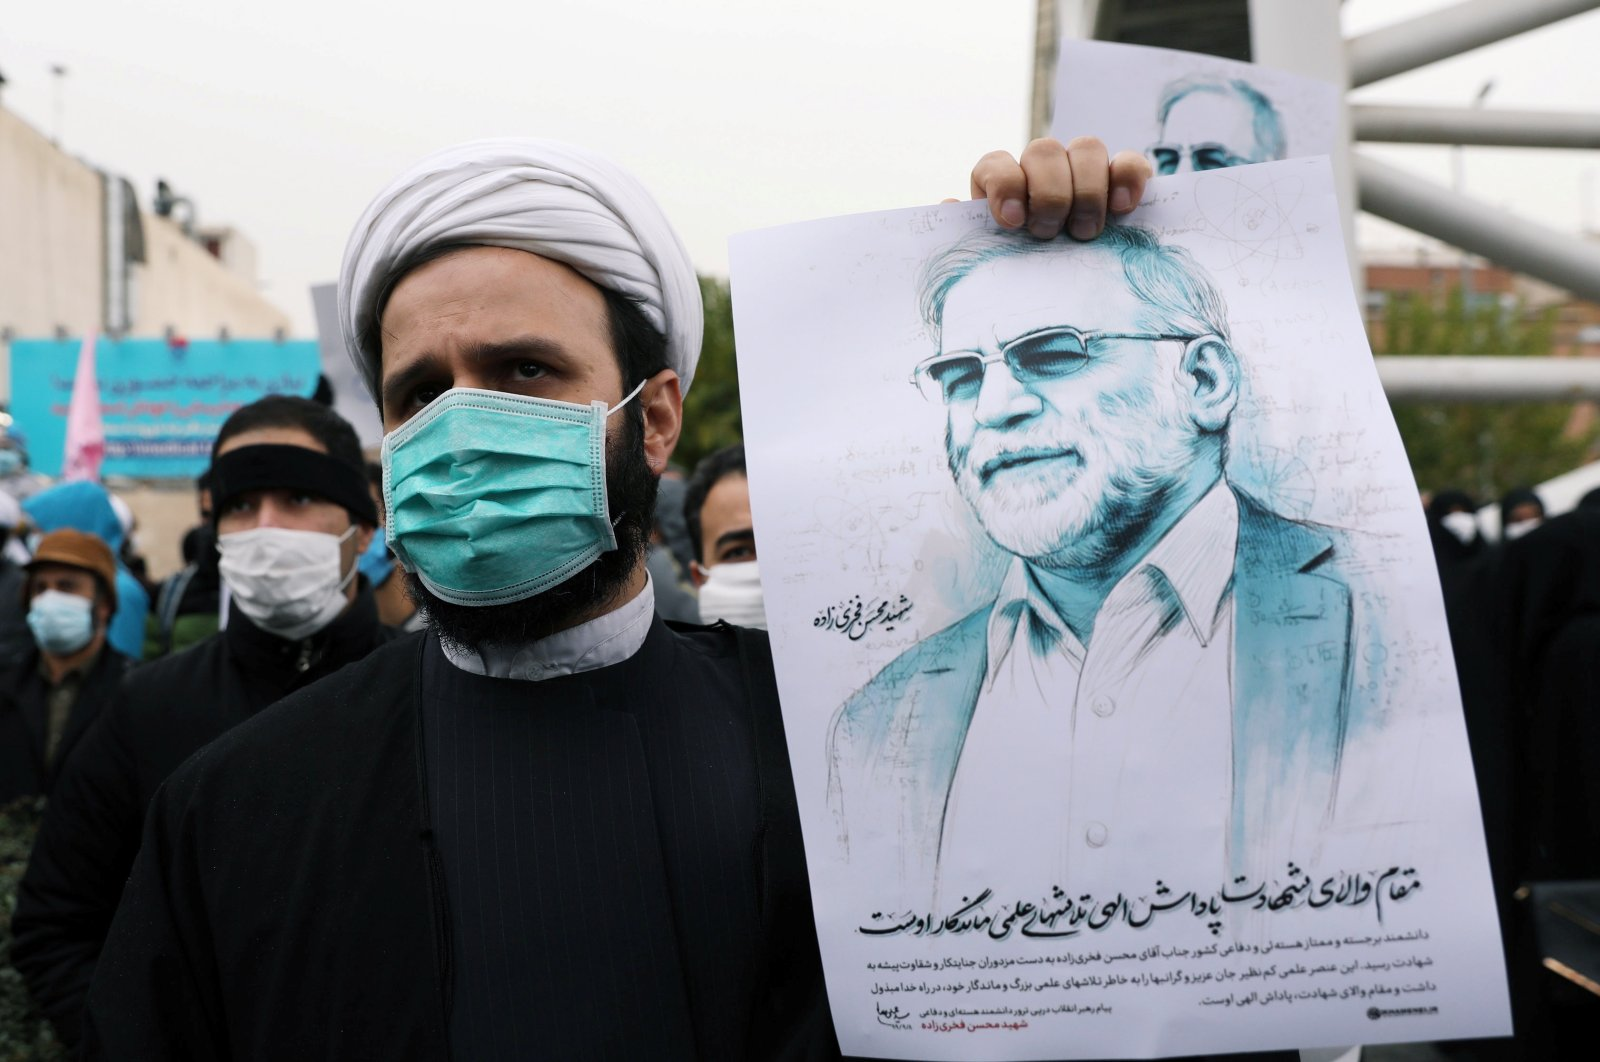 A protester holds a picture of Mohsen Fakhrizadeh, Iran's top nuclear scientist, during a demonstration against his killing in Tehran, Iran, Nov. 28, 2020. (REUTERS Photo)